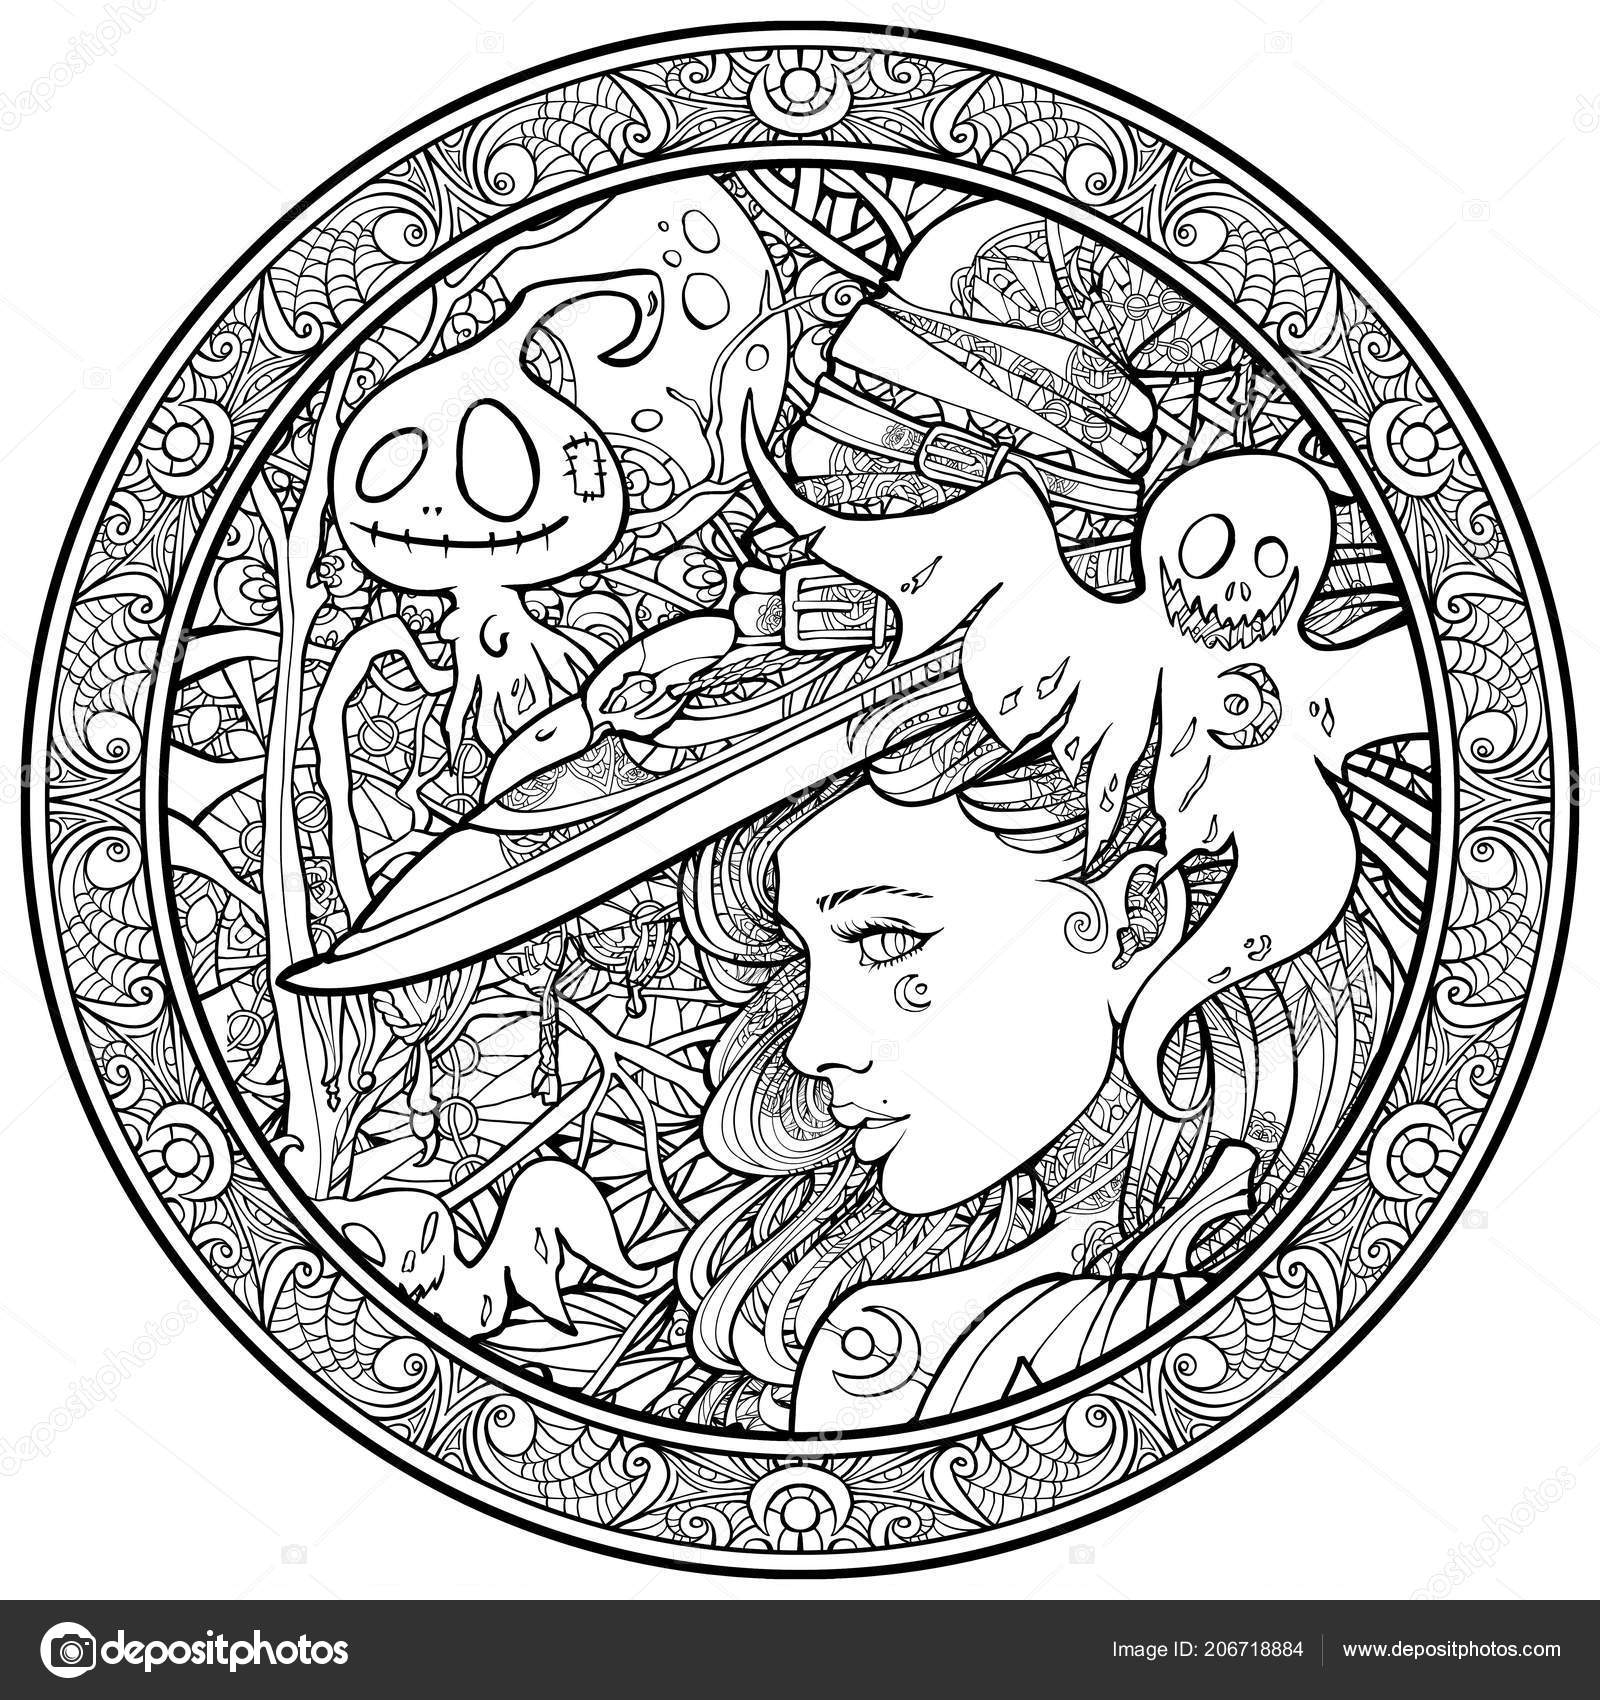 Coloring Page Adults Witch Surrounded Ghosts — Stock Photo ...